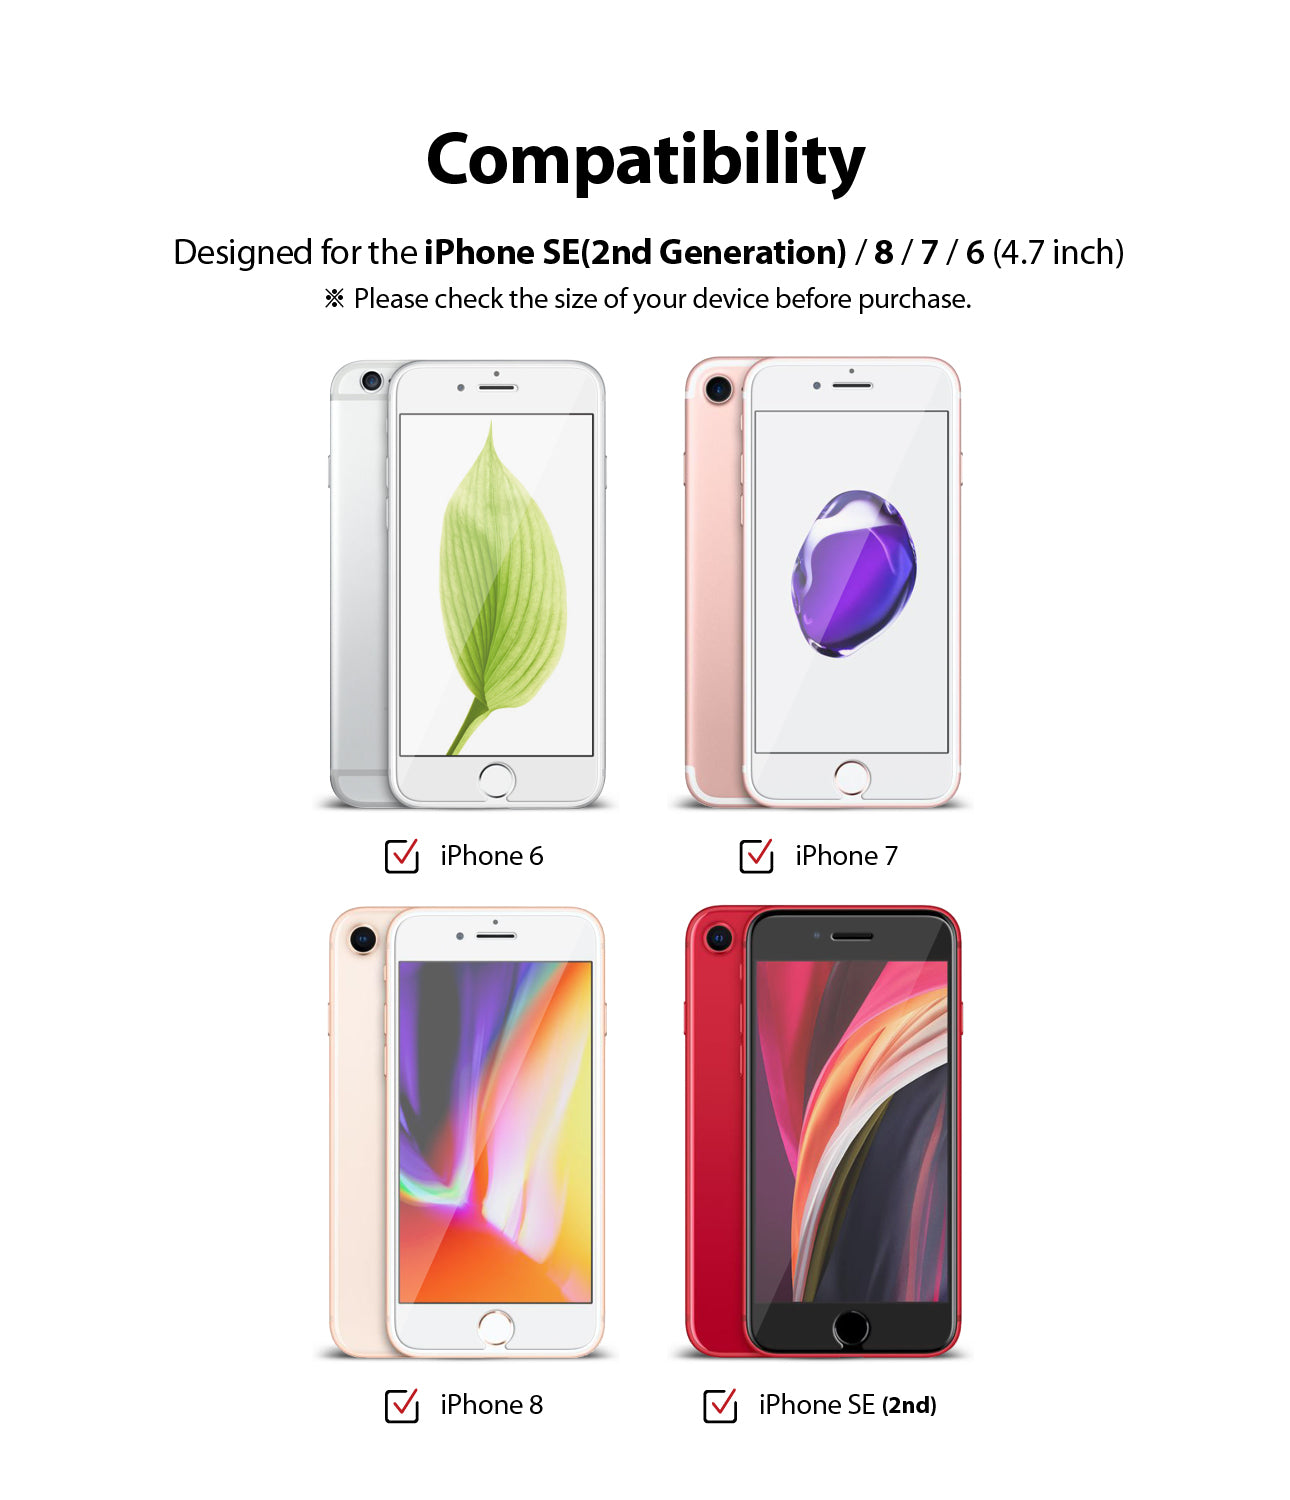 comaptible with iphone 6 / iphone 6s / iphone 7 / iphone 8 / iphone se 2020